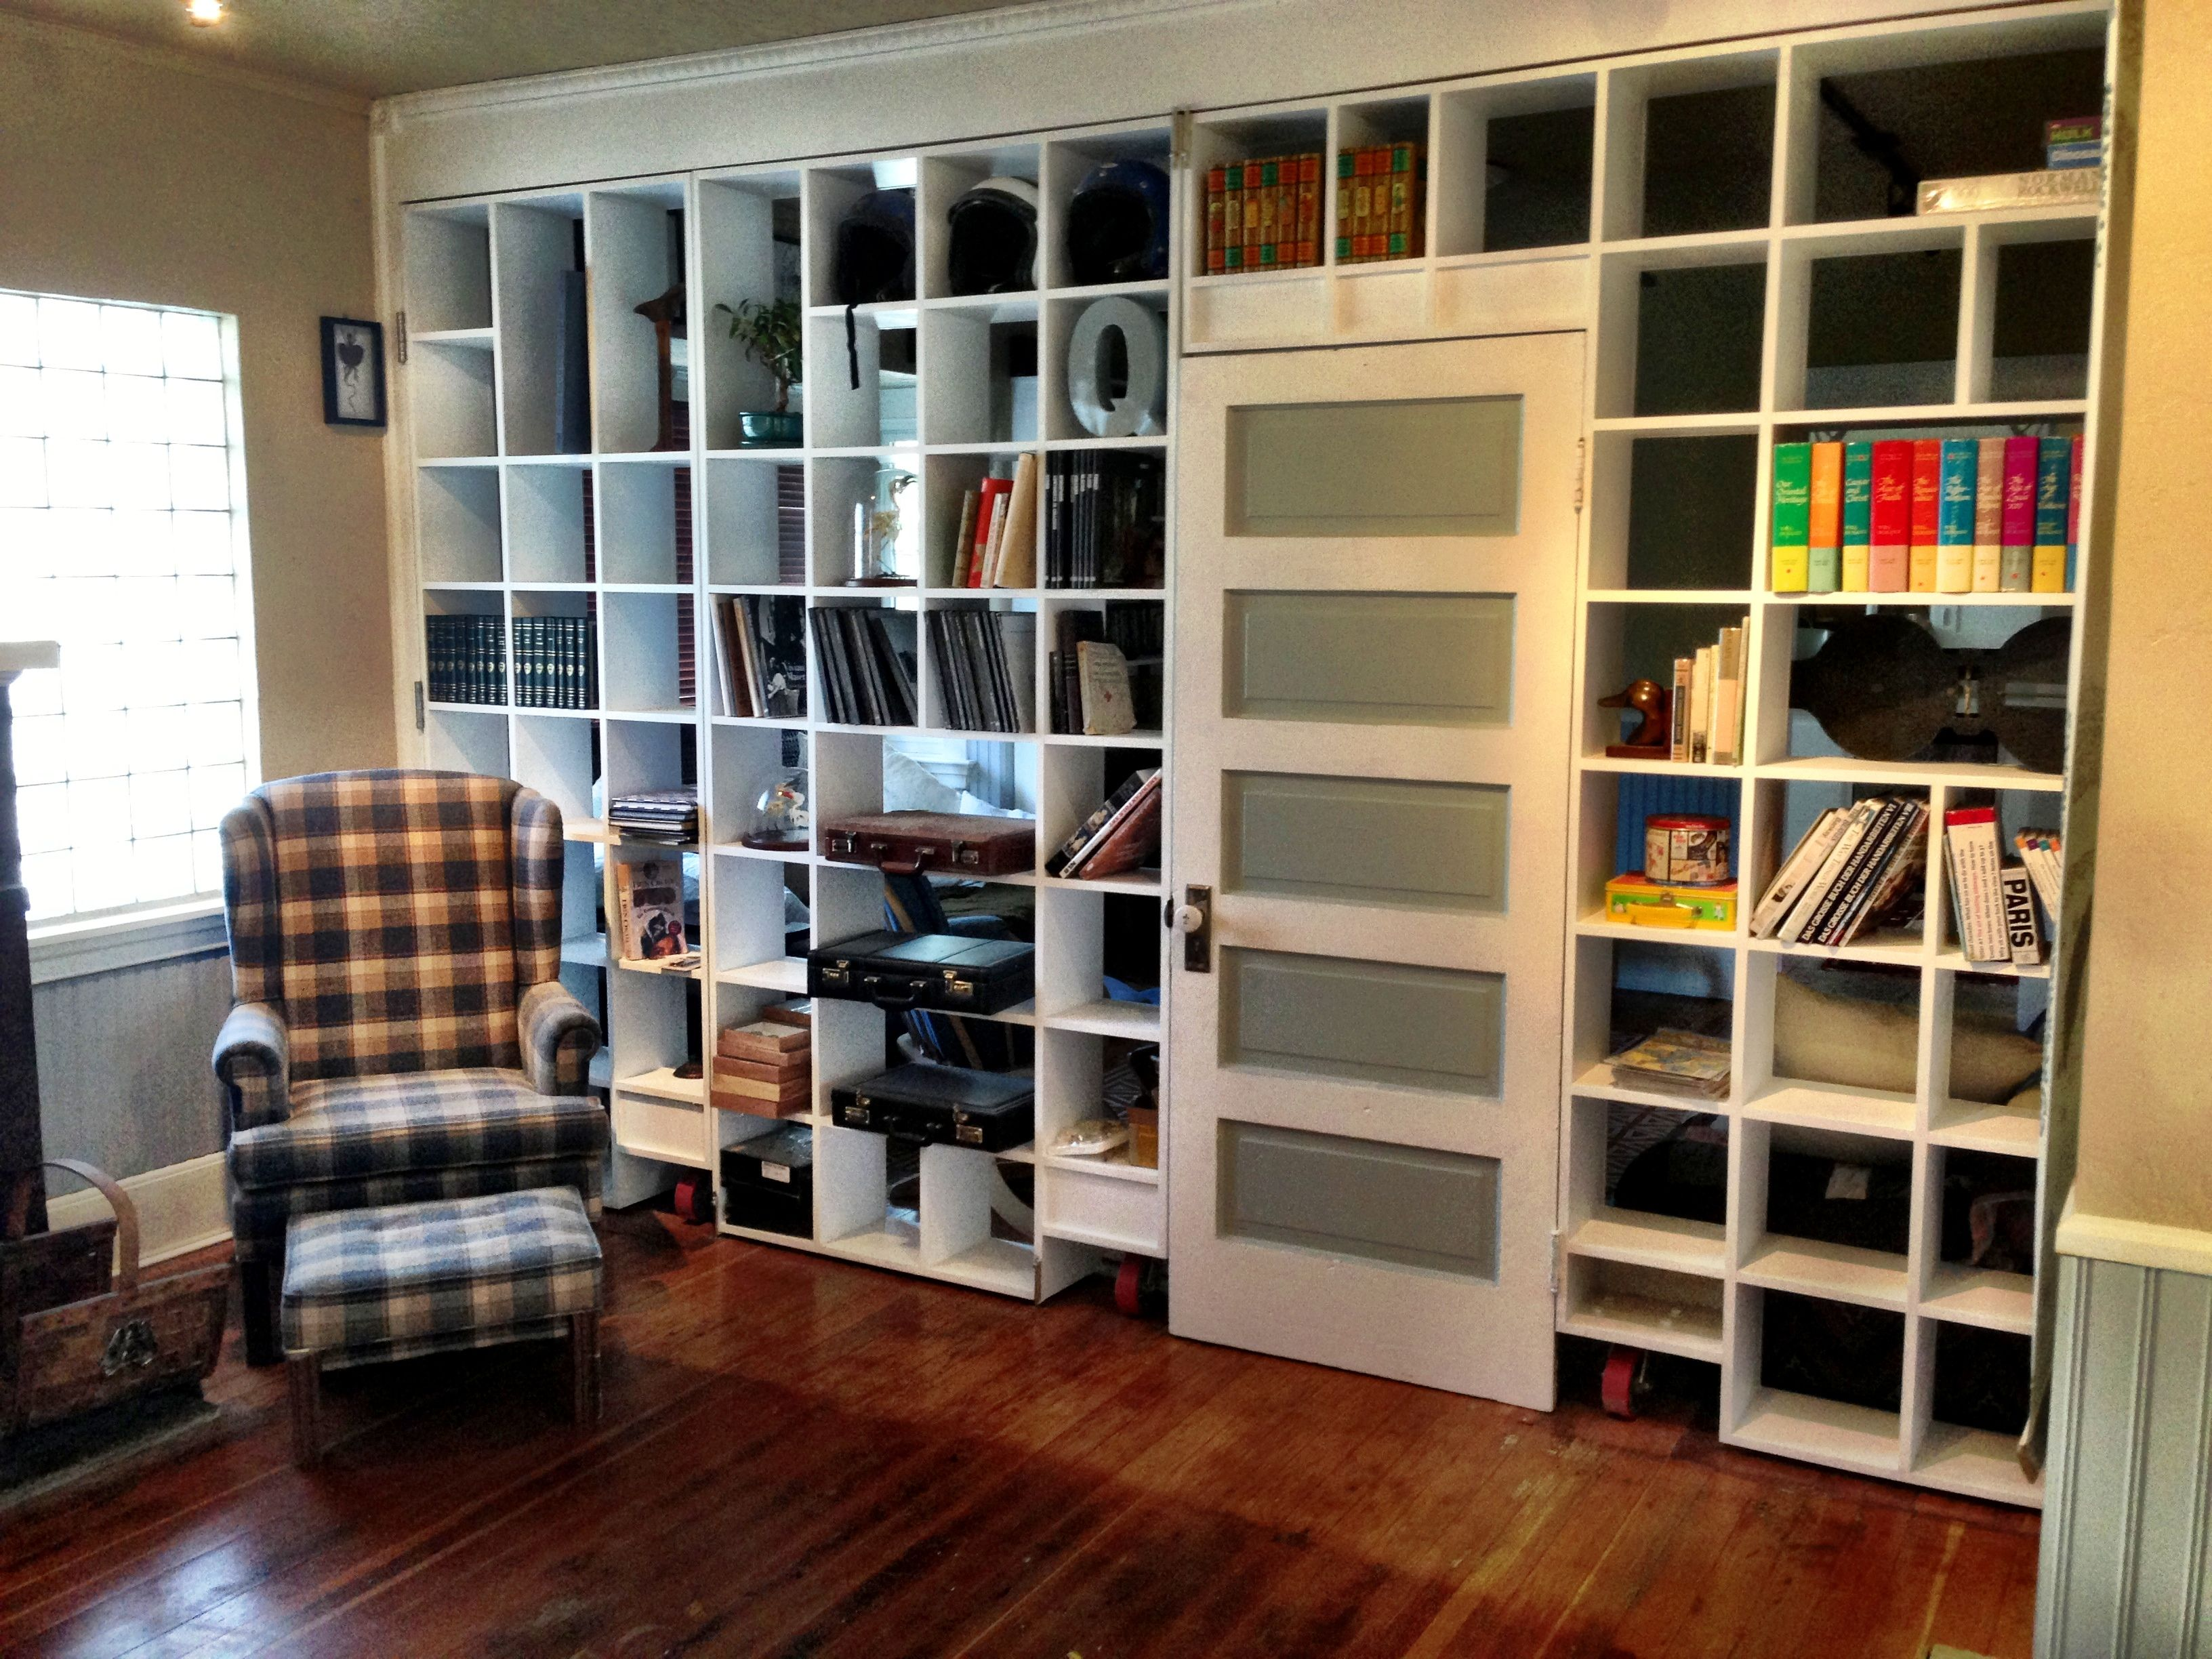 an expansive room can be impractical demarcating zones in an open